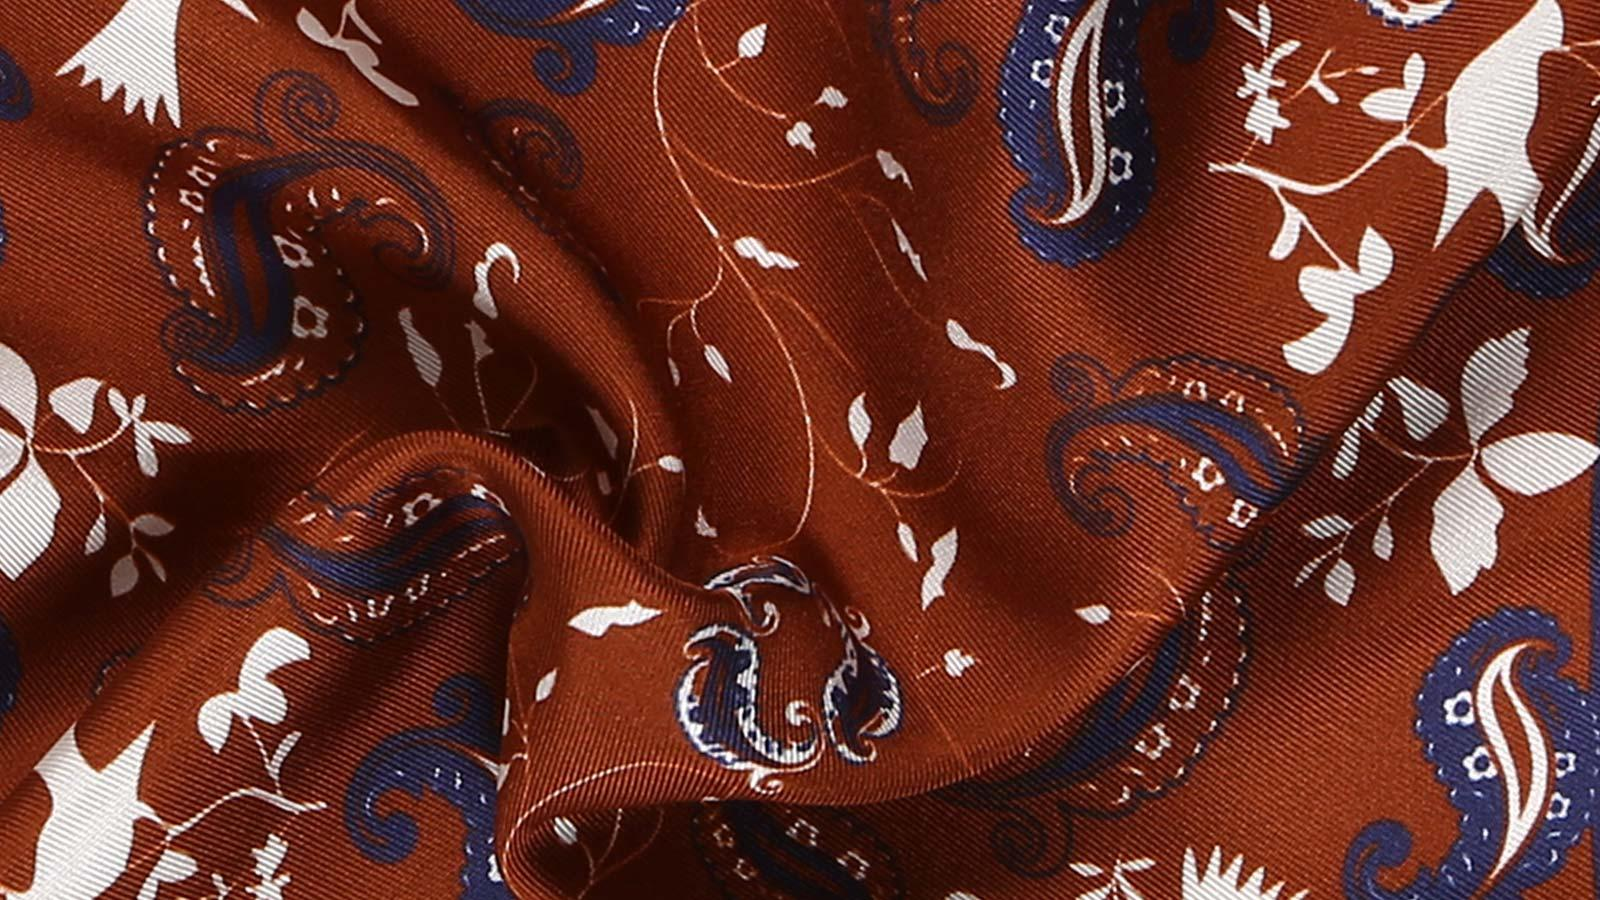 Gold & Chocolate Brown Patterned Italian 100% Silk Pocket Square - slider image 1